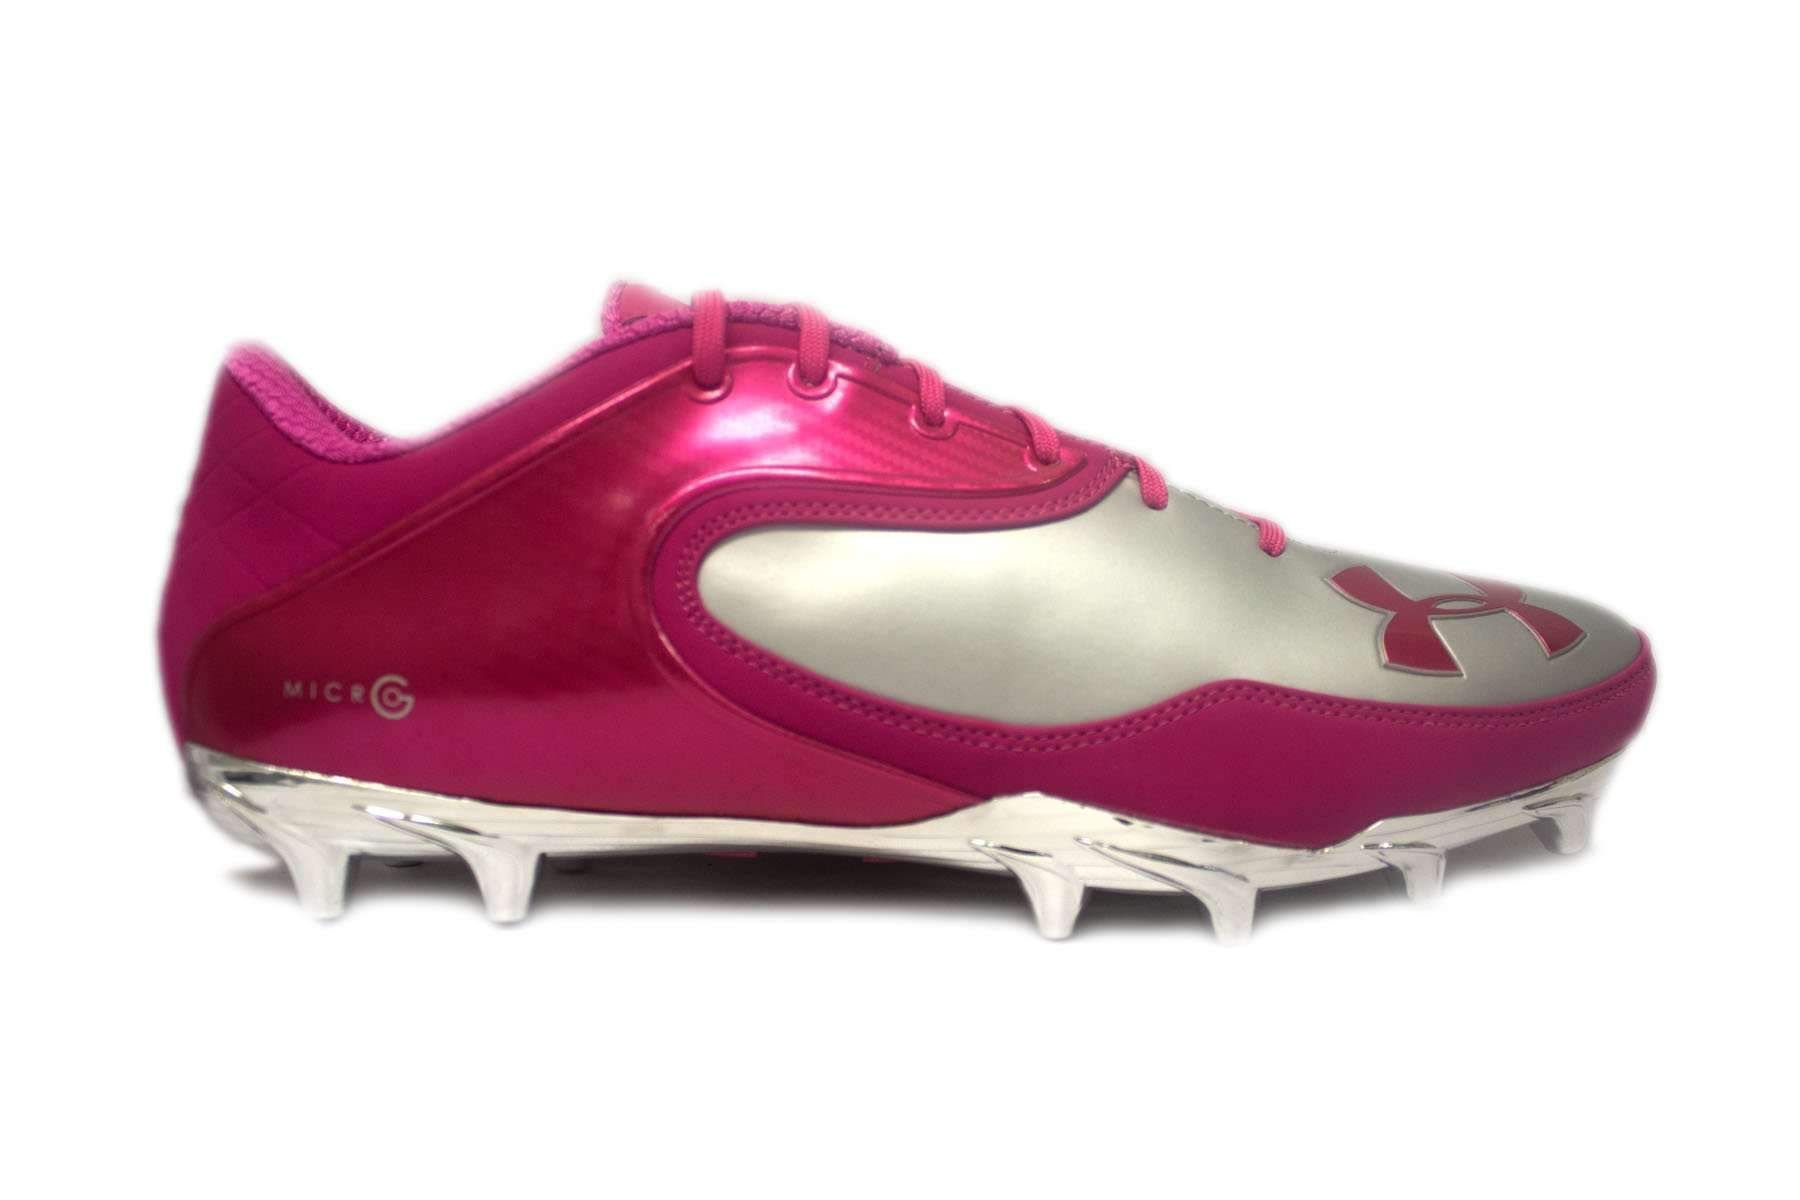 7a275f8cce0 Under Armour Team Nitro Icon Low MC Football Cleats